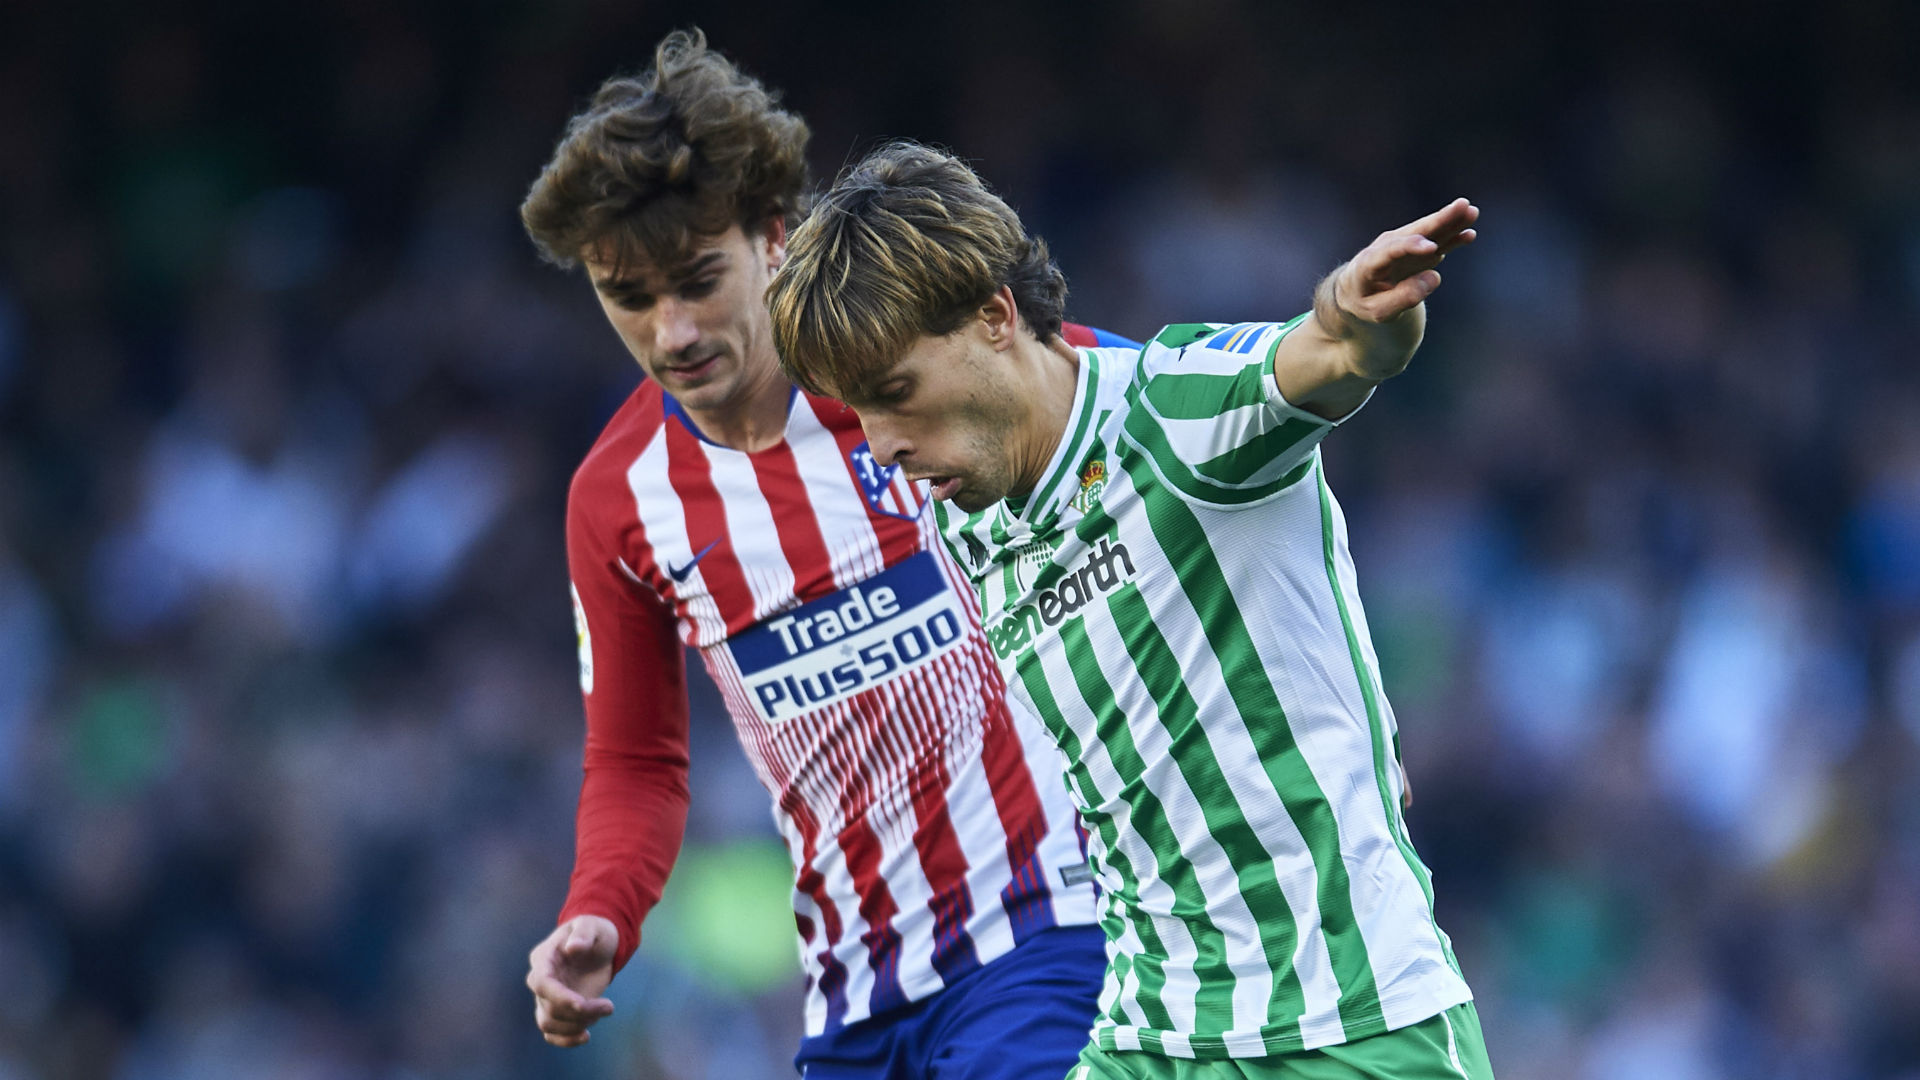 Atletico suffer defeat at Betis in Morata La Liga debut